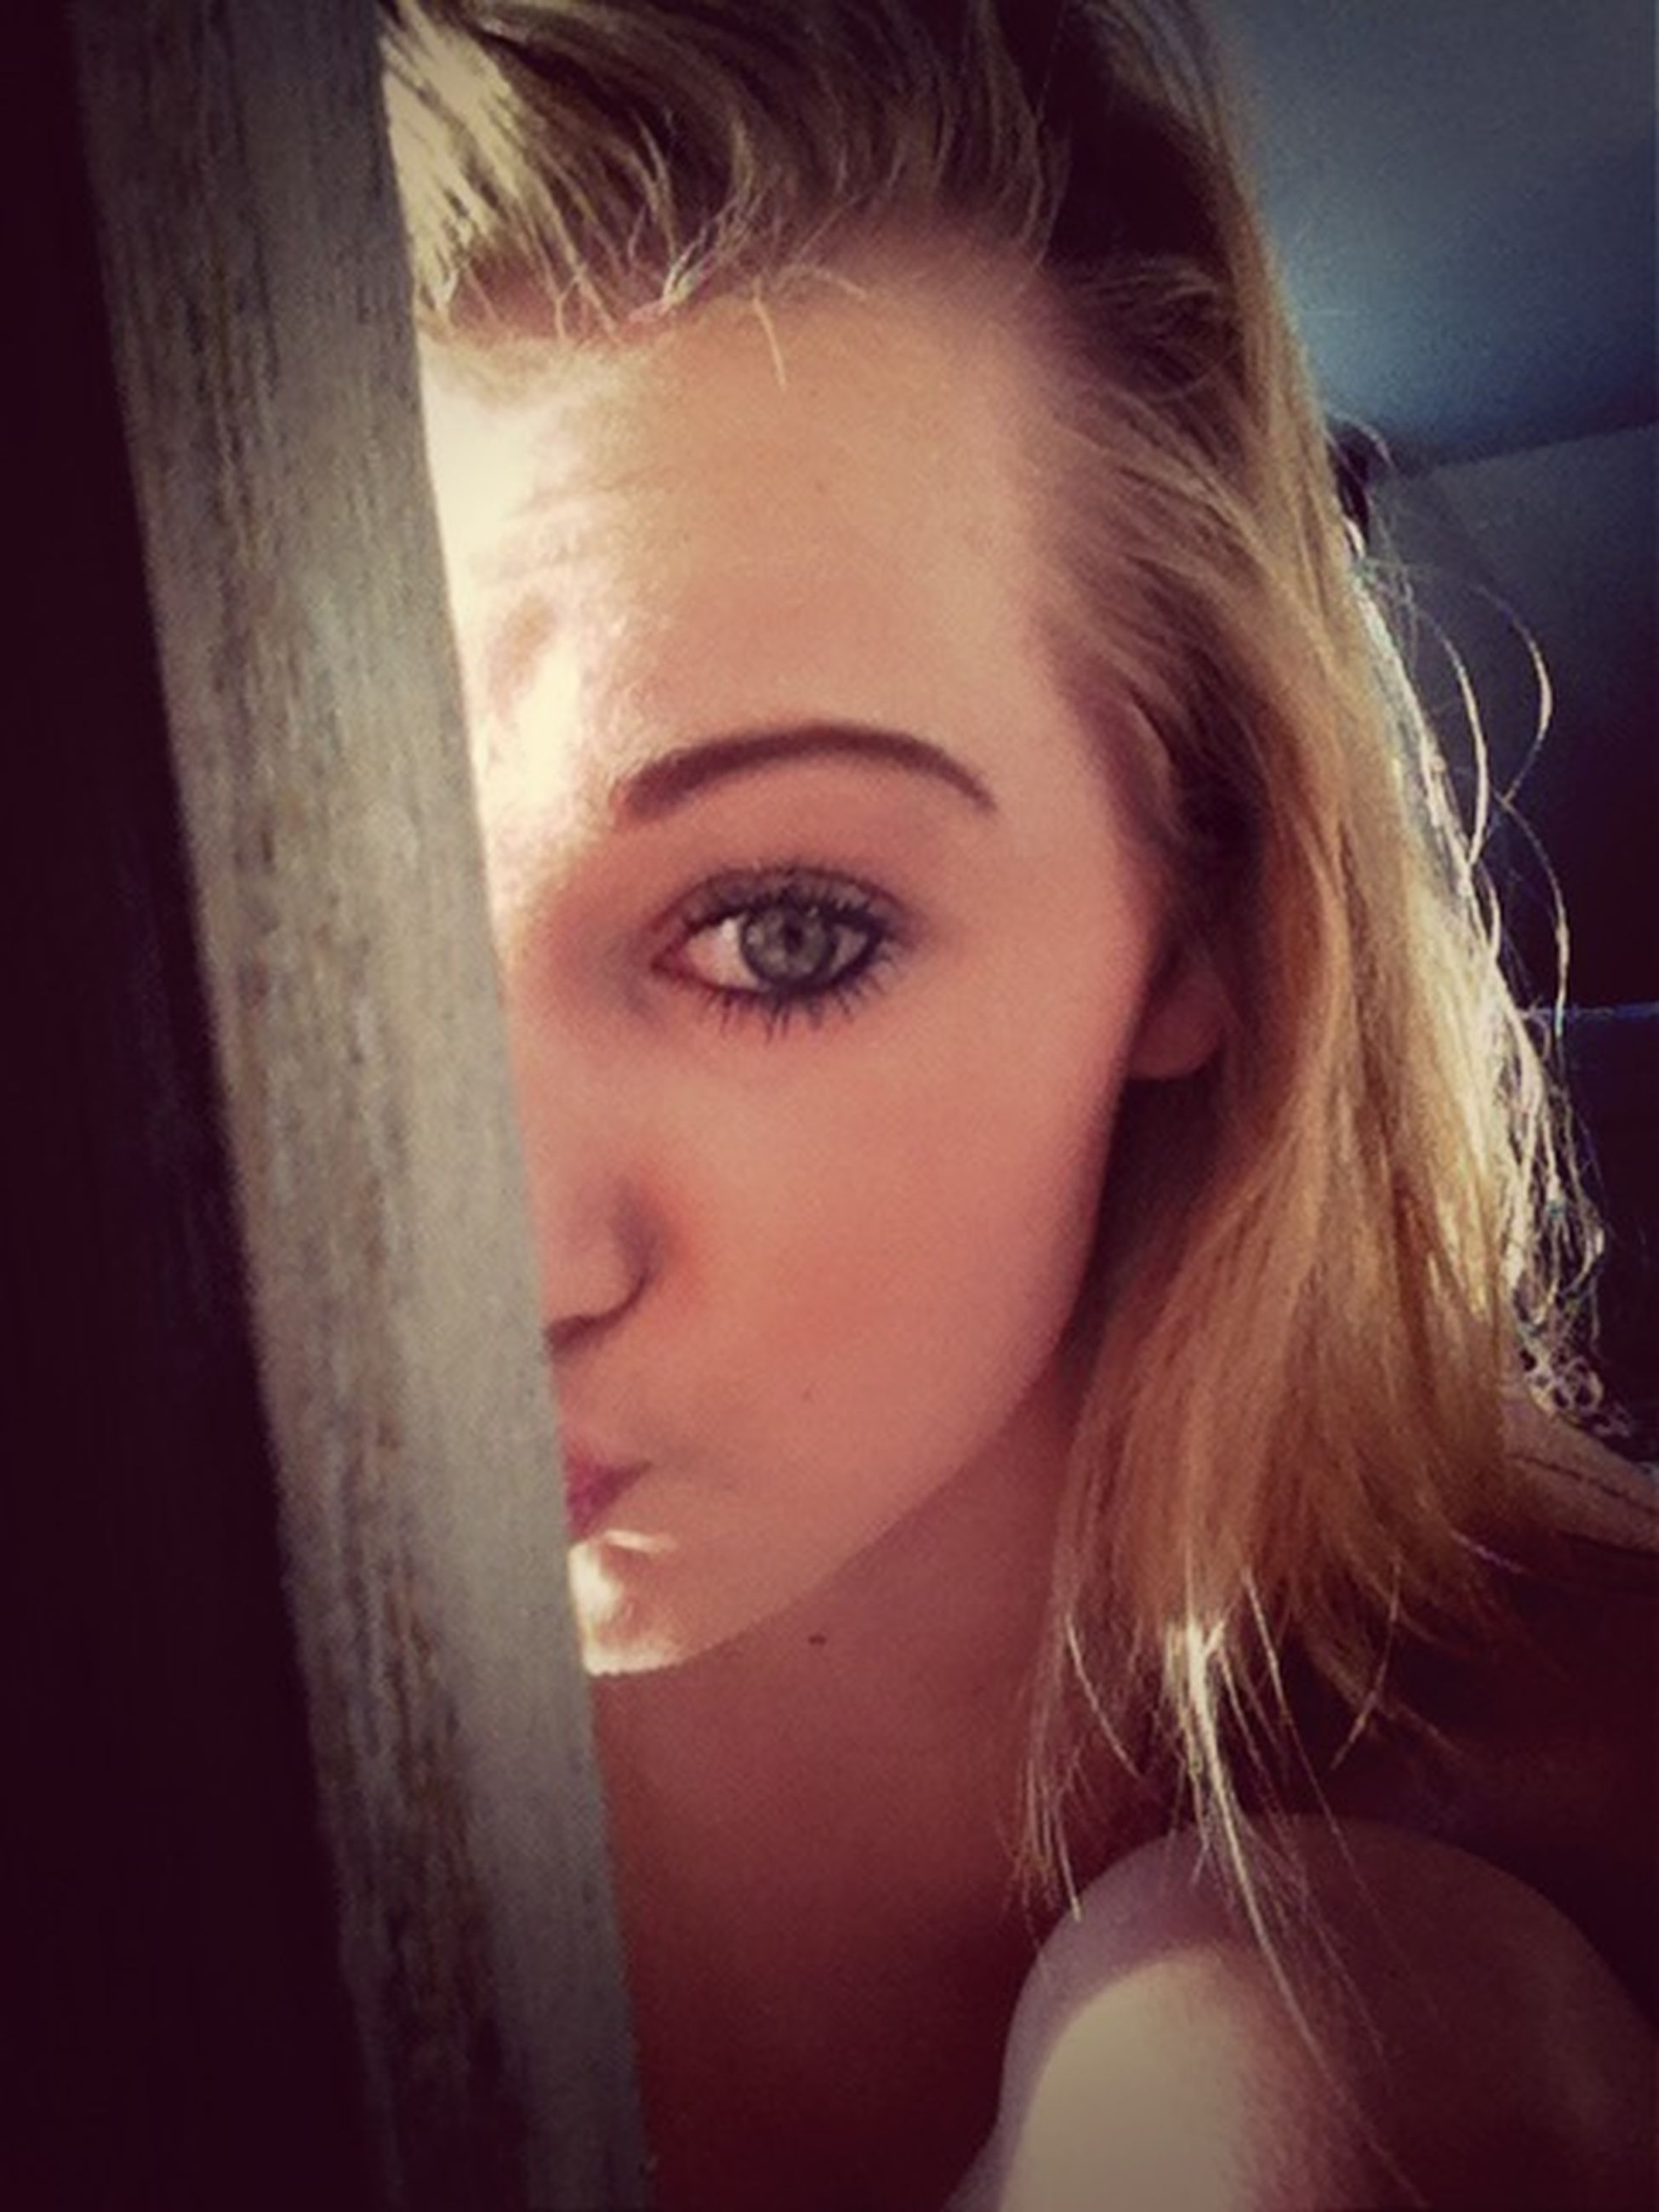 headshot, person, indoors, young women, close-up, lifestyles, portrait, head and shoulders, looking at camera, long hair, leisure activity, young adult, human face, blond hair, contemplation, front view